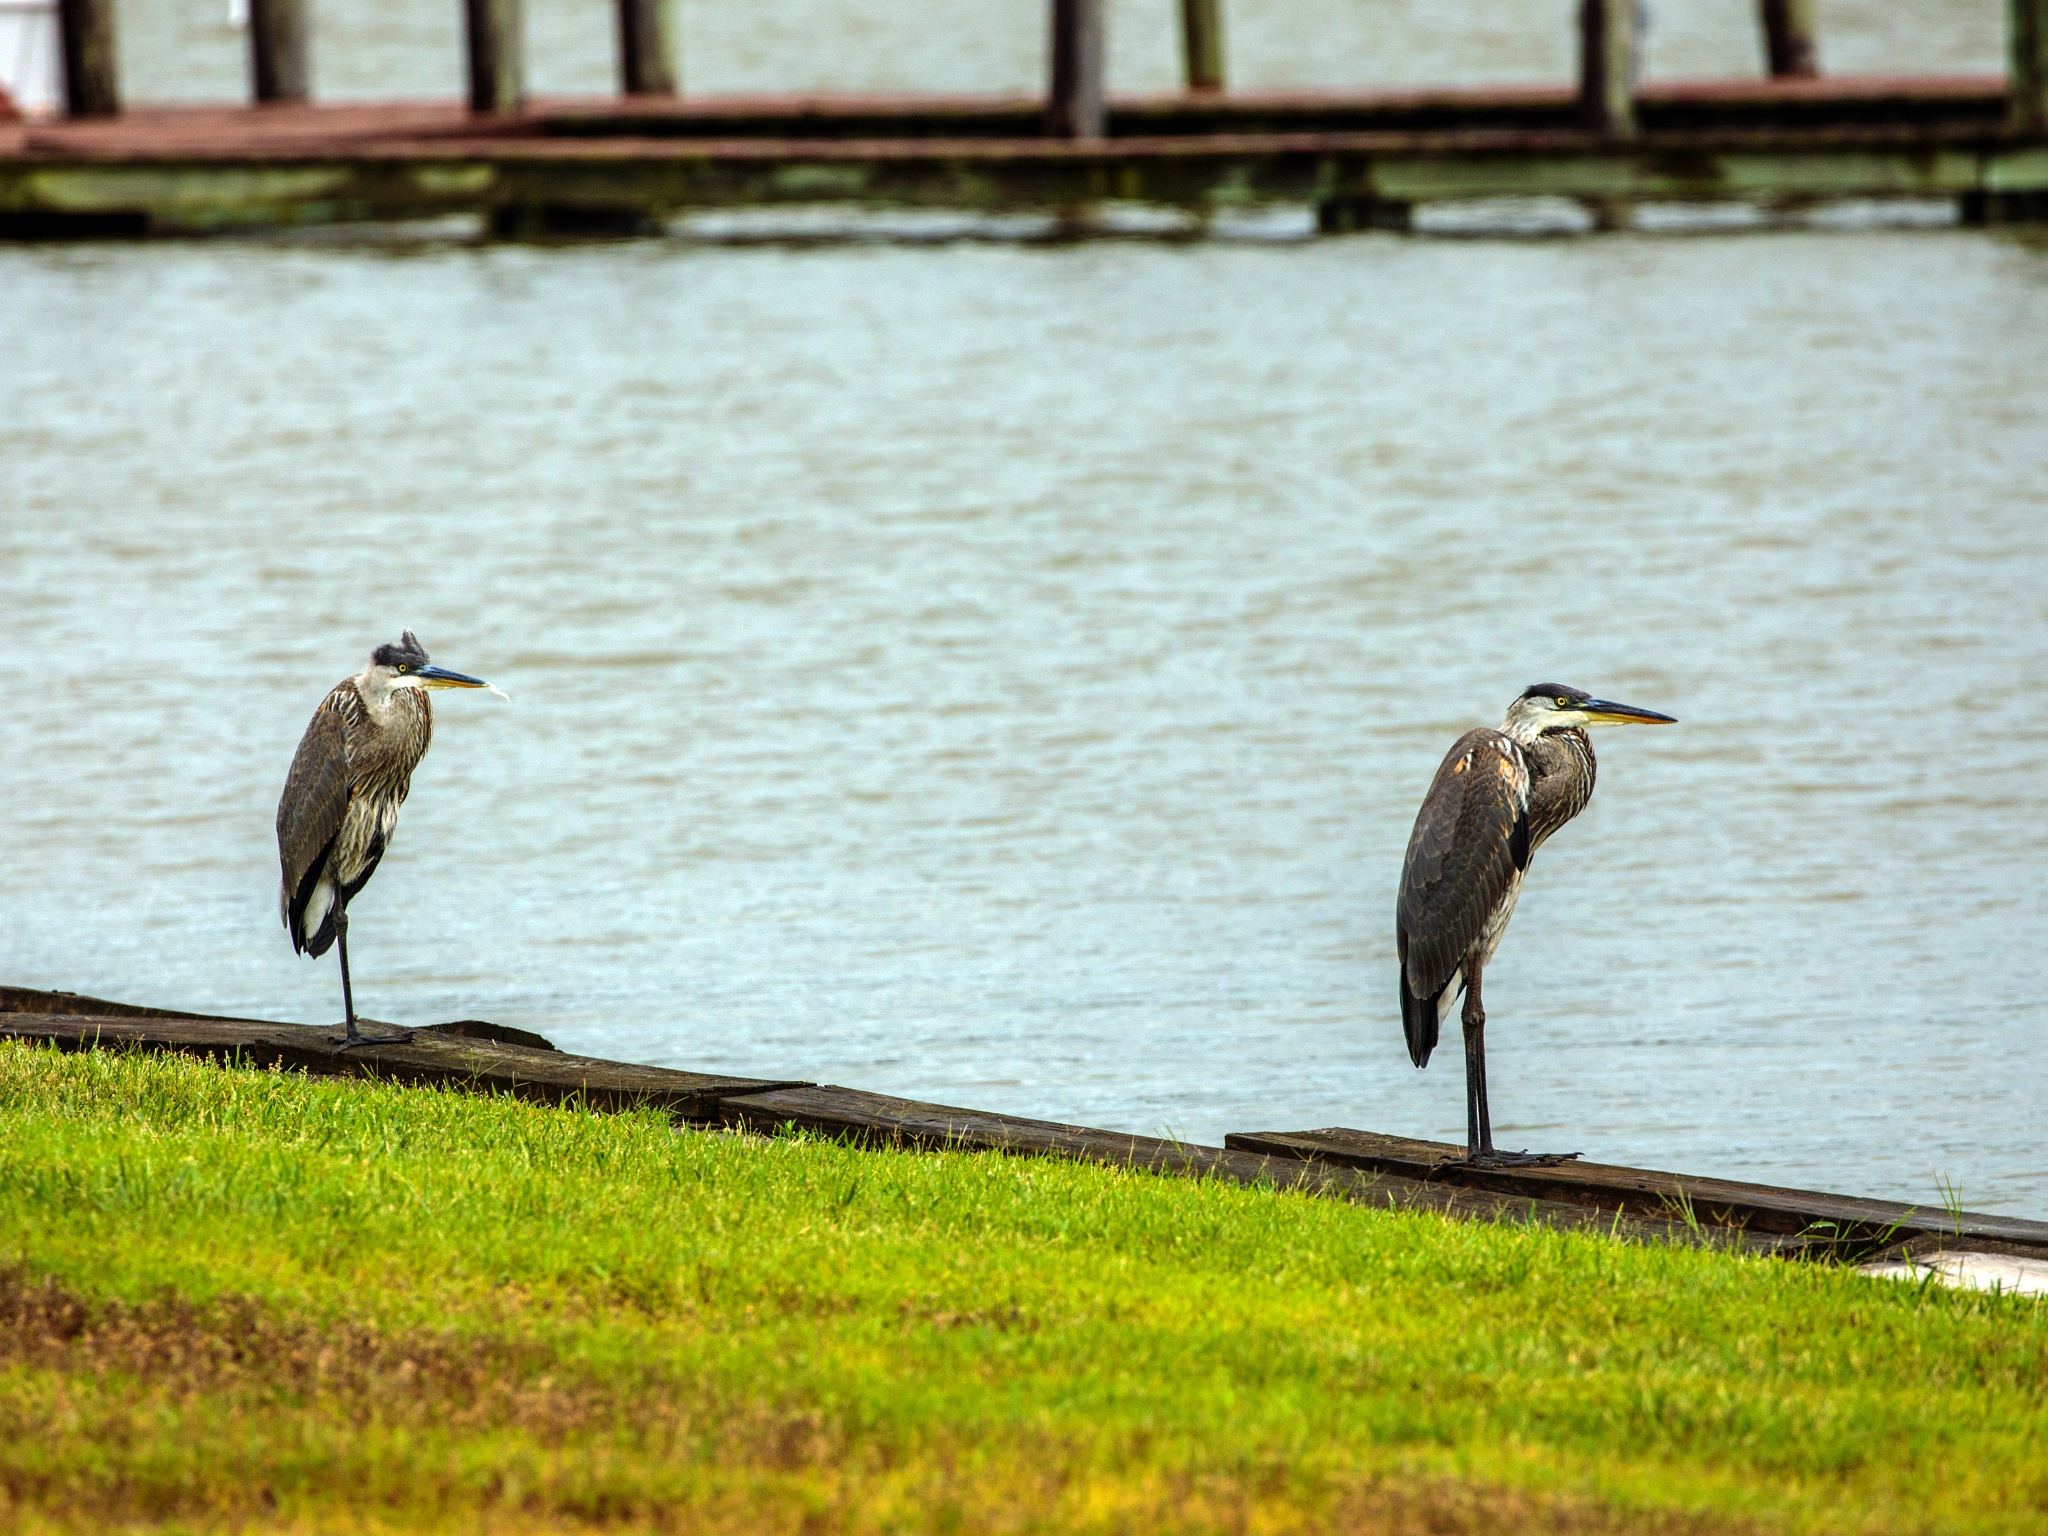 Heron by the Bay by Mary Carter